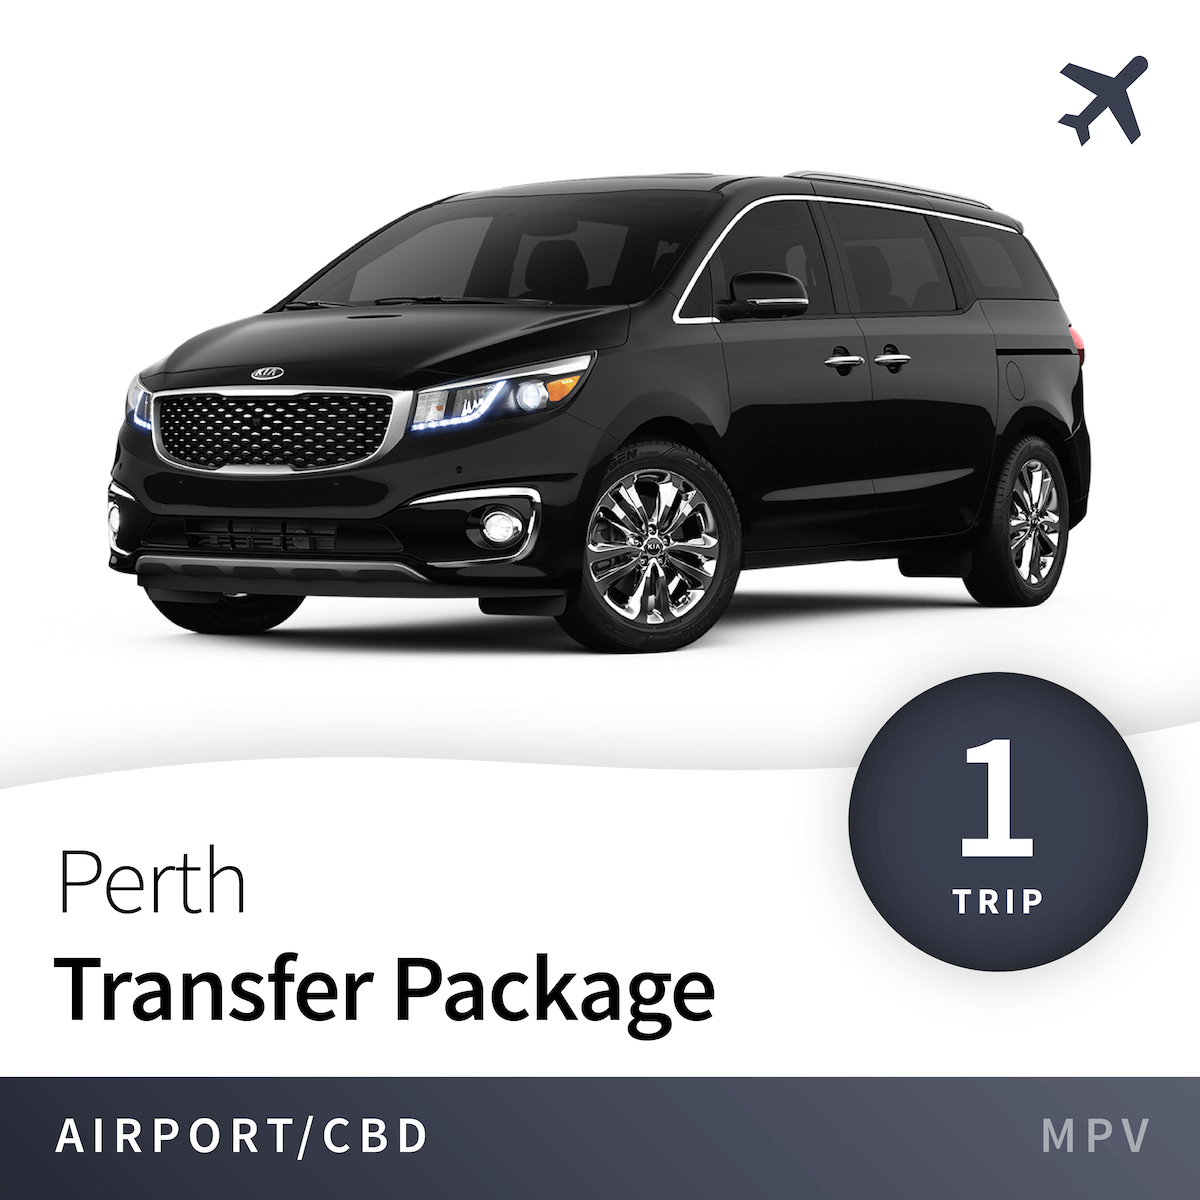 Perth Airport Transfer Package - MPV (1 Trip) 1